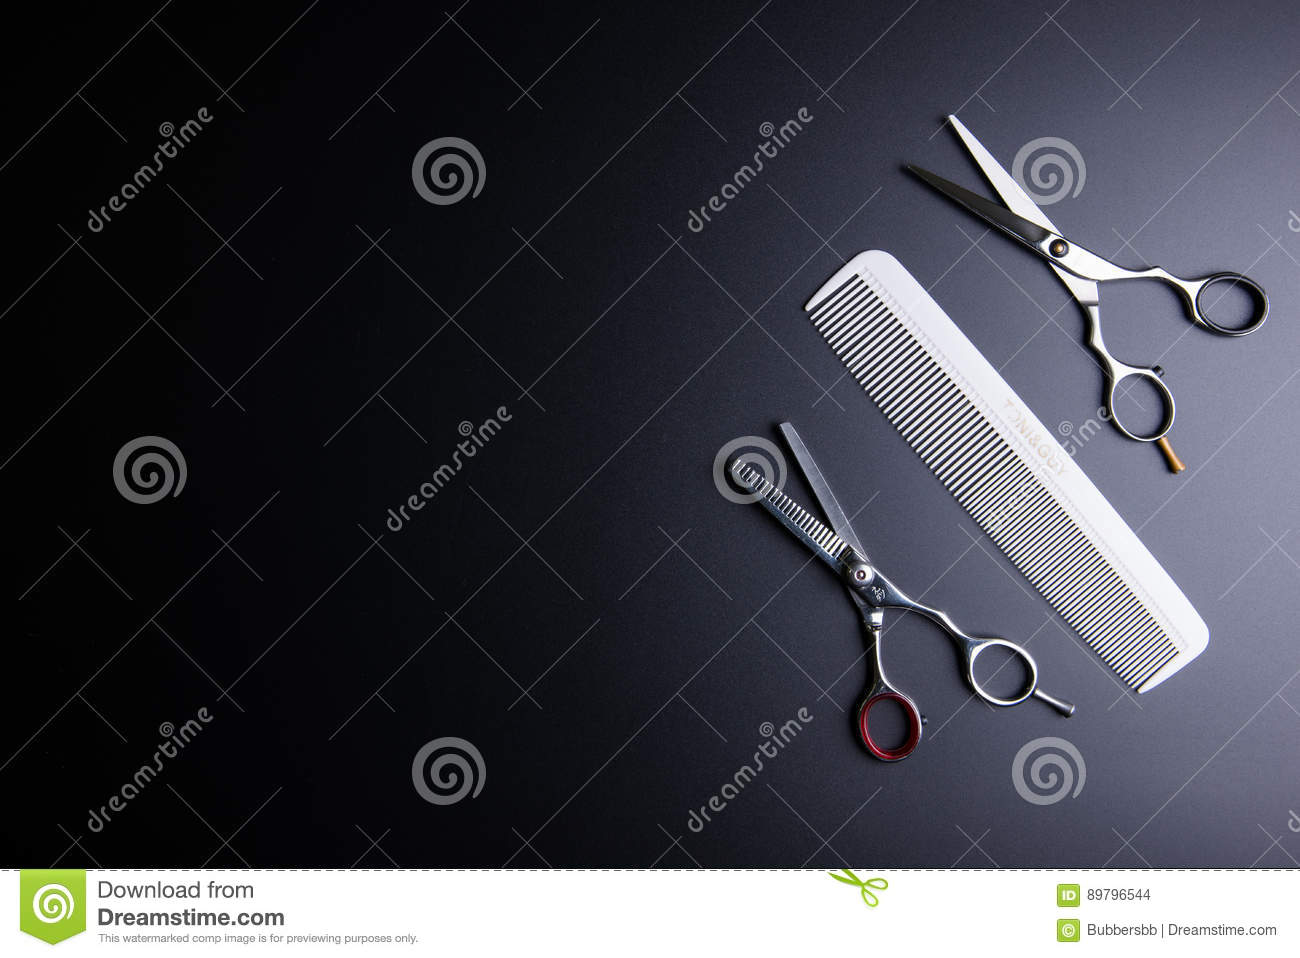 Stylish Professional Barber Scissors and white comb on black background. Hairdresser salon concept, Hairdressing Set. Haircut